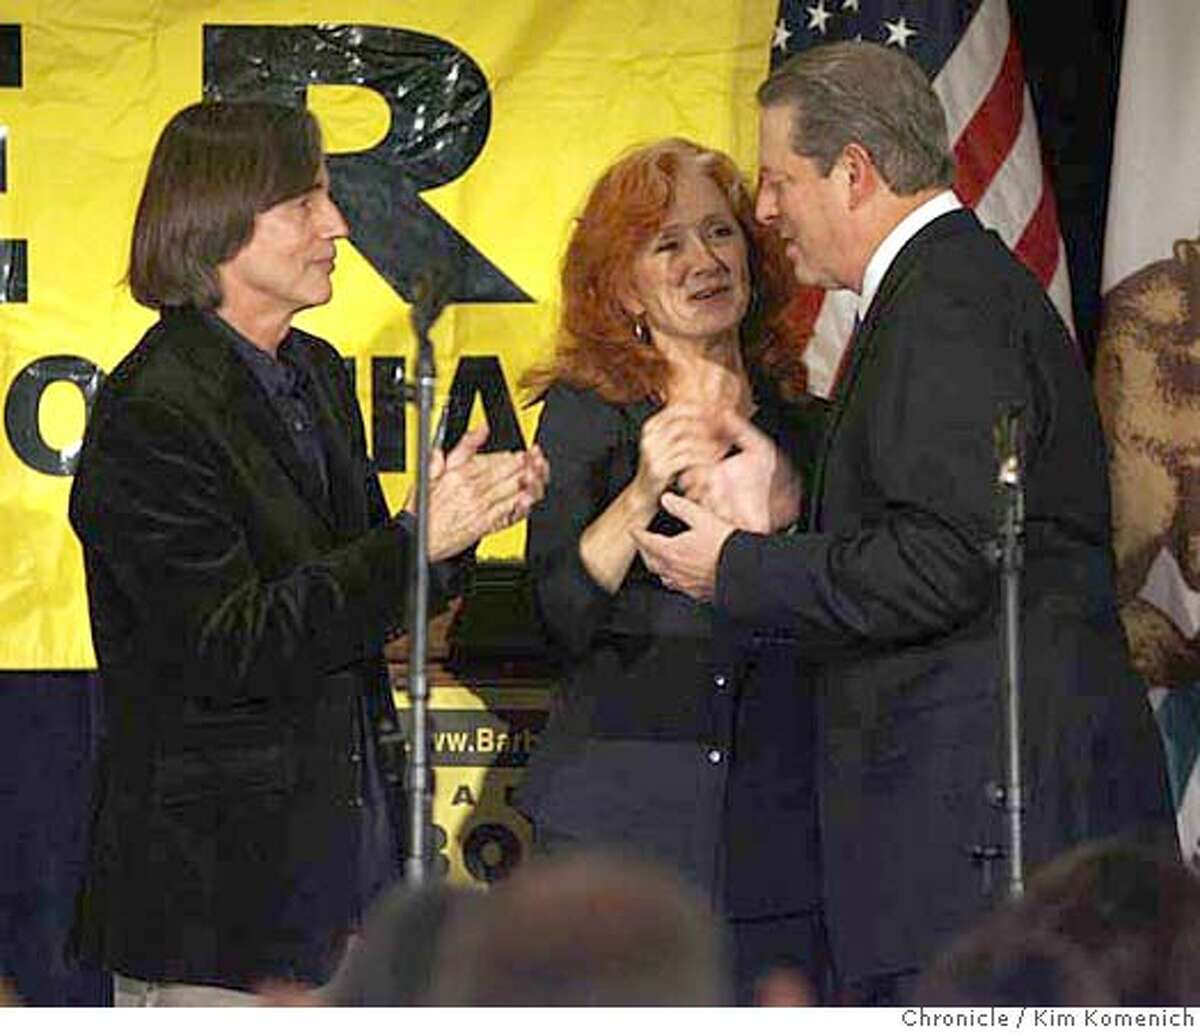 Jackson Browne and Bonnie Raitt greet Former Vice President Al Gore as he enters the stage at a fundraiser for Sen. Barbara Boxer at the St. Francis Hotel Thursday night. Photo by Kim Komenich/The Chronicle **Jackson Browne, Bonnie Raitt, Al Gore